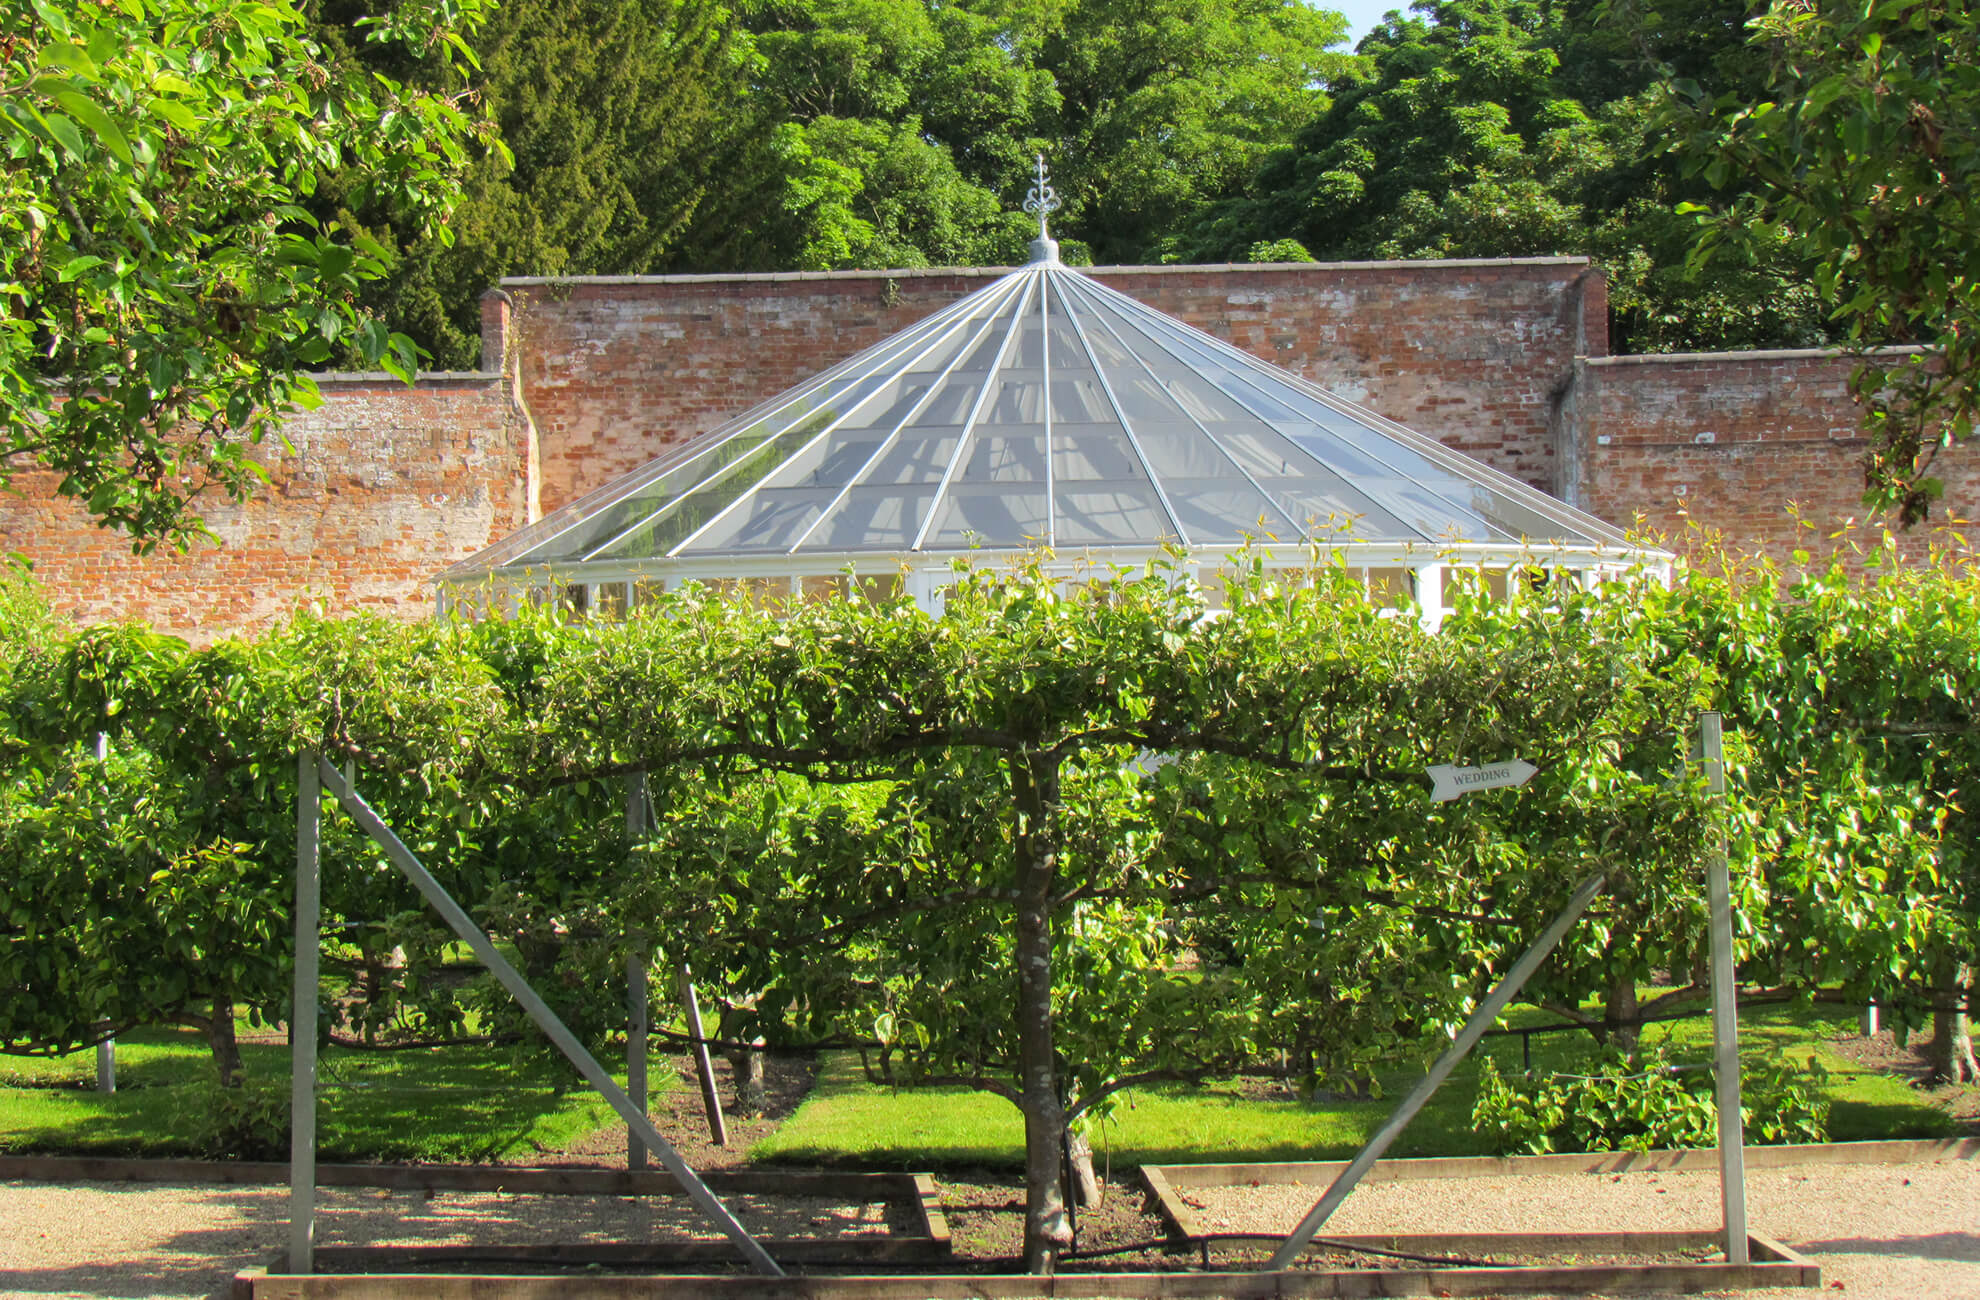 The fruit tree maze at Combermere Abbey surrounds the beautiful Orangery